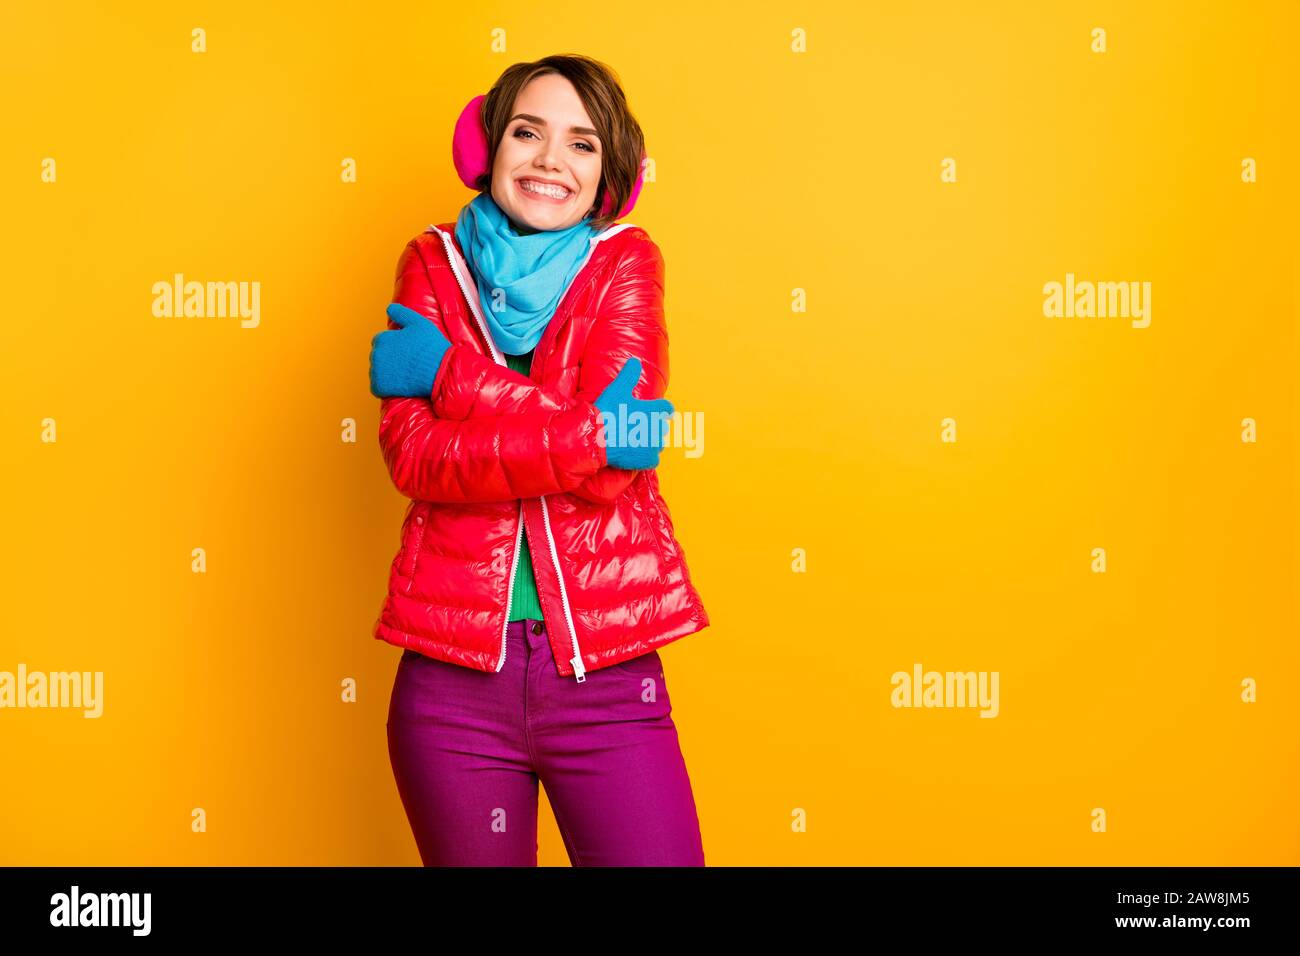 Photo of funny cheerful lady enjoy warm coat in frosty weather hug herself wear casual short red overcoat blue scarf gloves earmuffs pants isolated Stock Photo